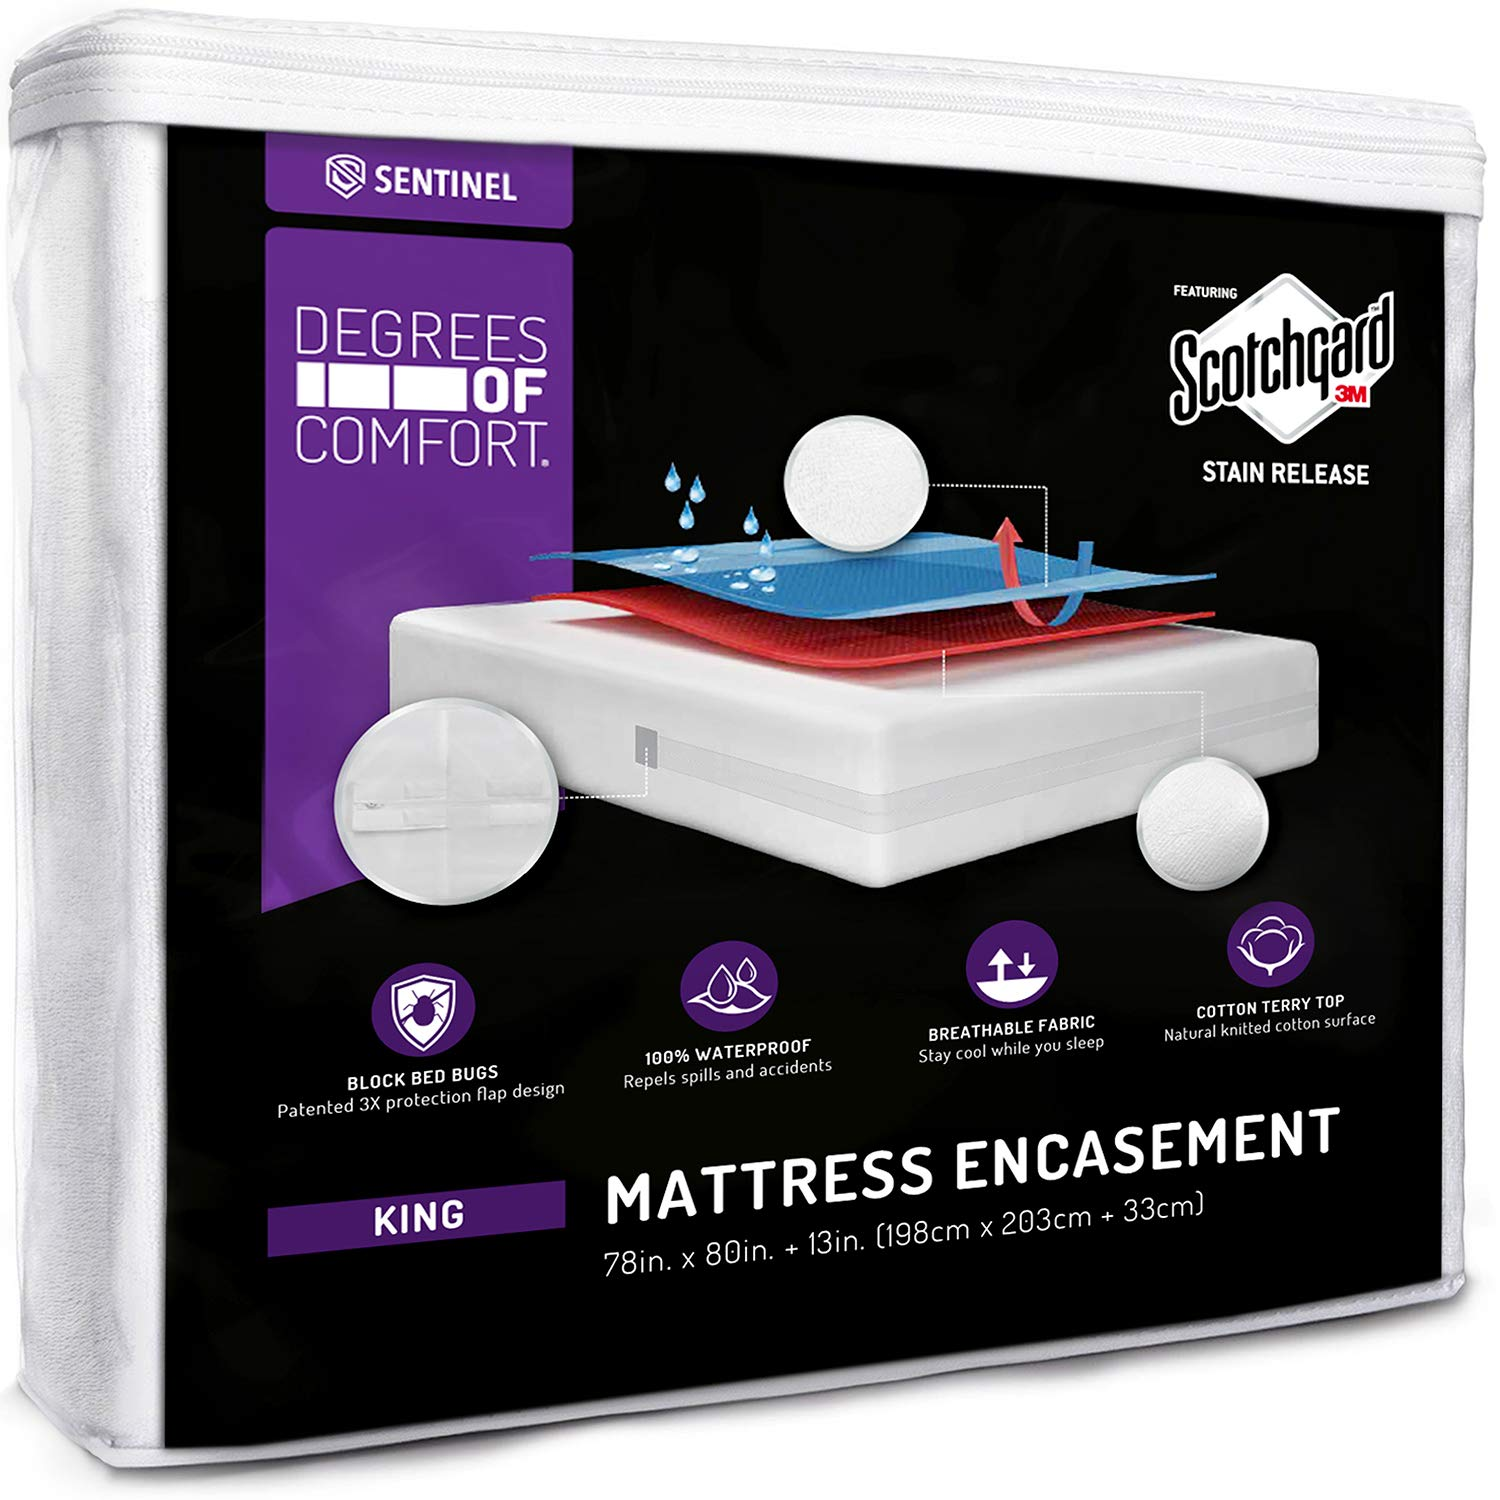 Degrees of Comfort Waterproof Zippered Mattress Encasement - Breathable Bed Bug Mattress Cover with Advance Patented Zipper Flap Design - 3M Scotchgard Stain Release Technology Fits 9-12'' King